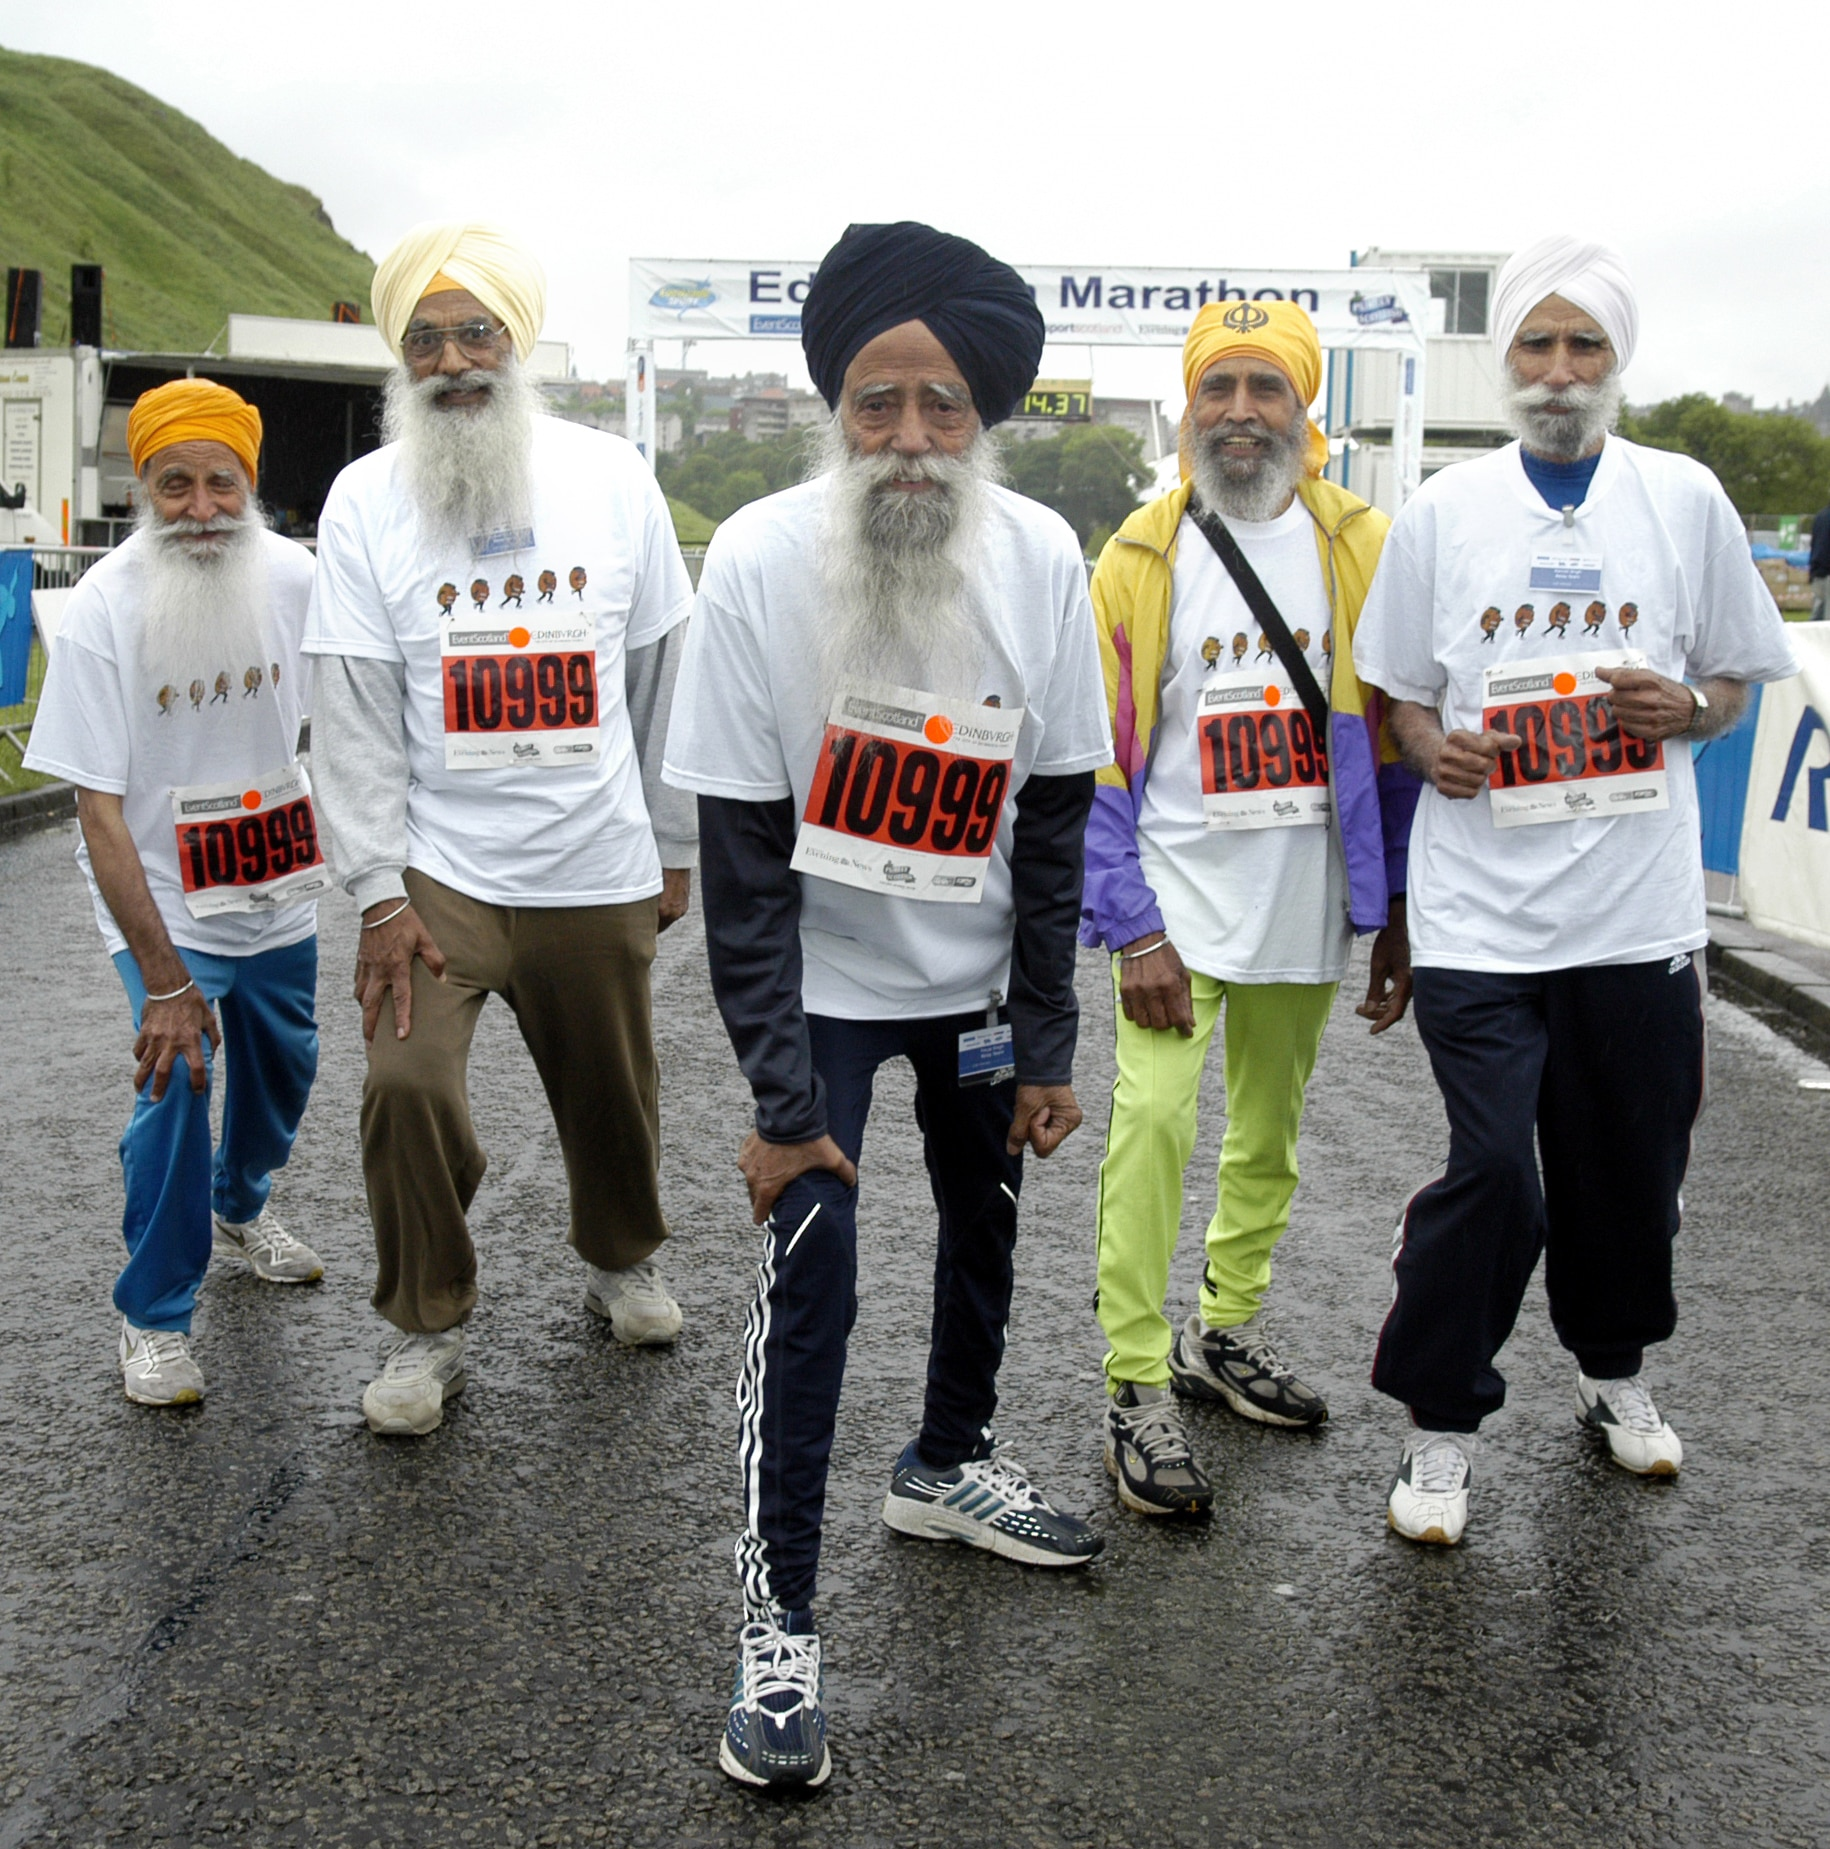 Fauja Singh with a group of runners at Edinburgh Marathon 2005